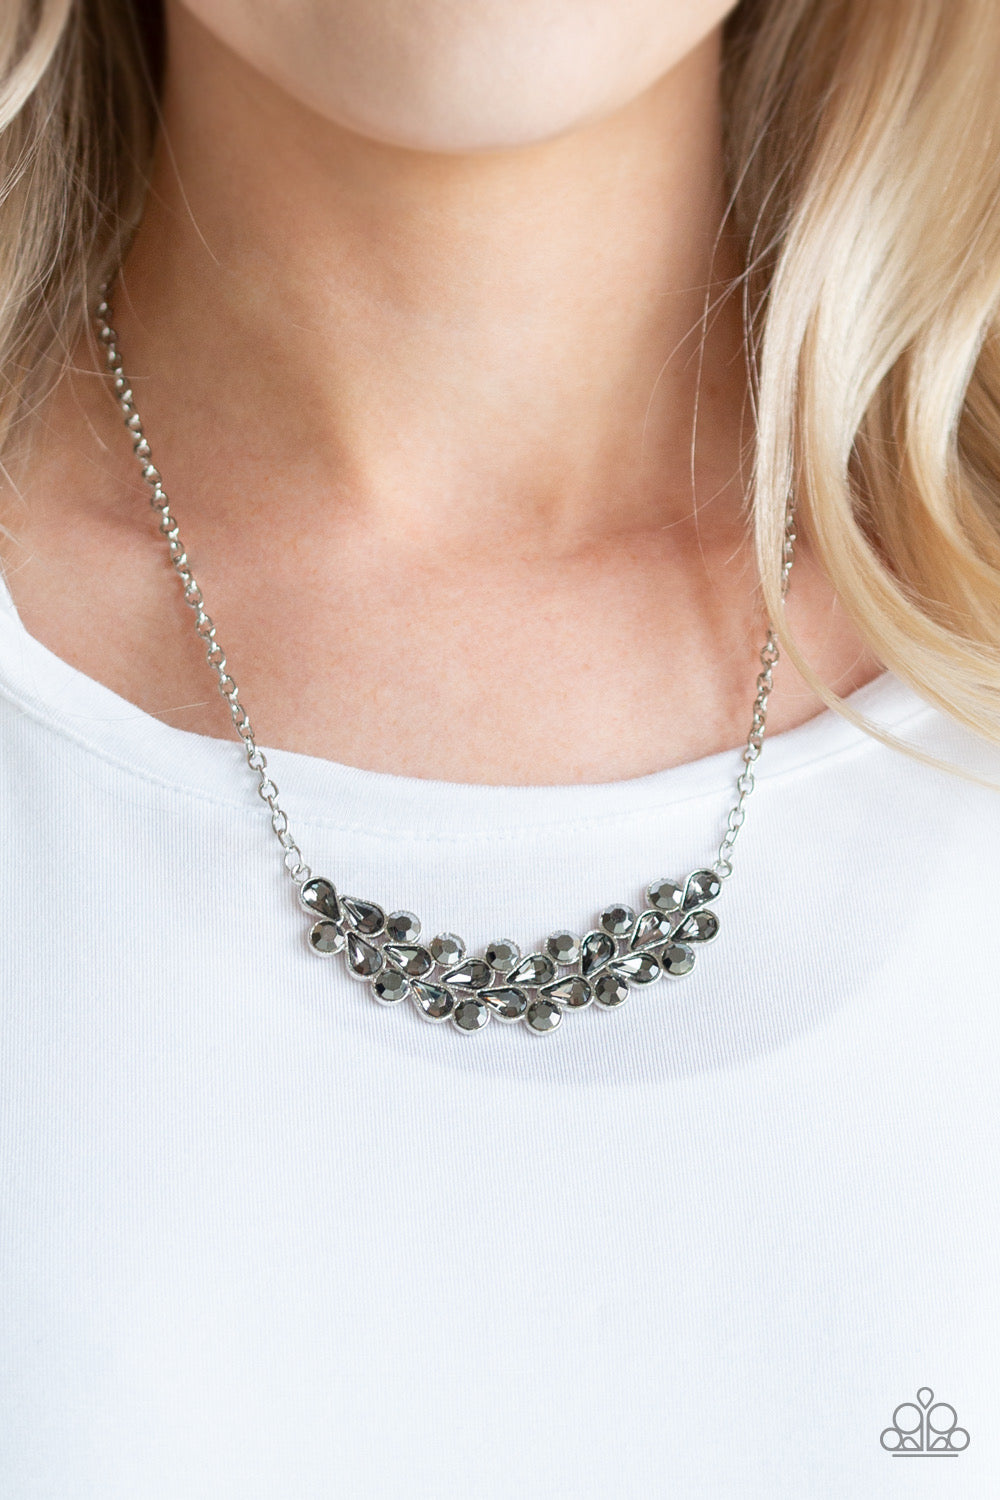 Paparazzi Special Treatment - Silver Necklace